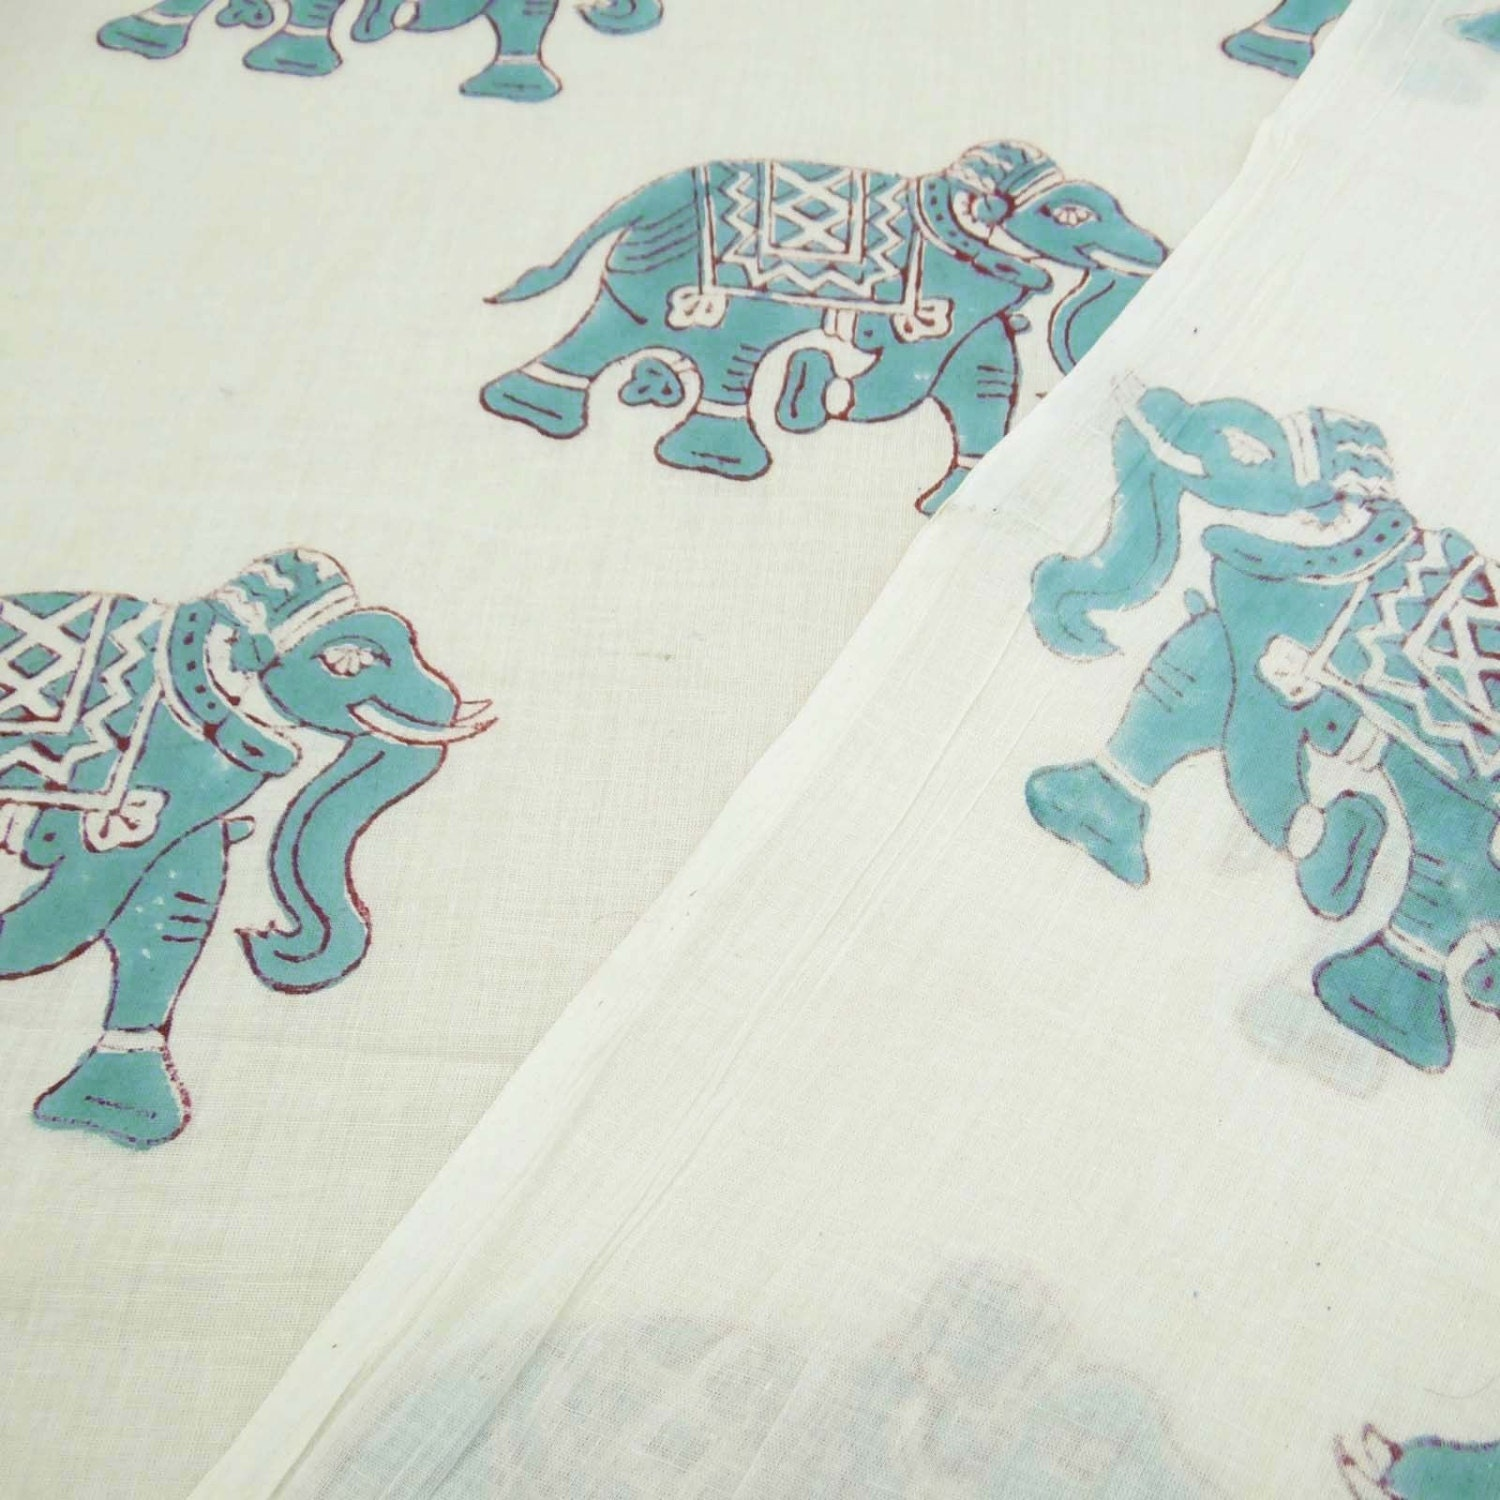 477343975d4d Sold by Yard Elephant Print 100% Cotton Hand Printed Block